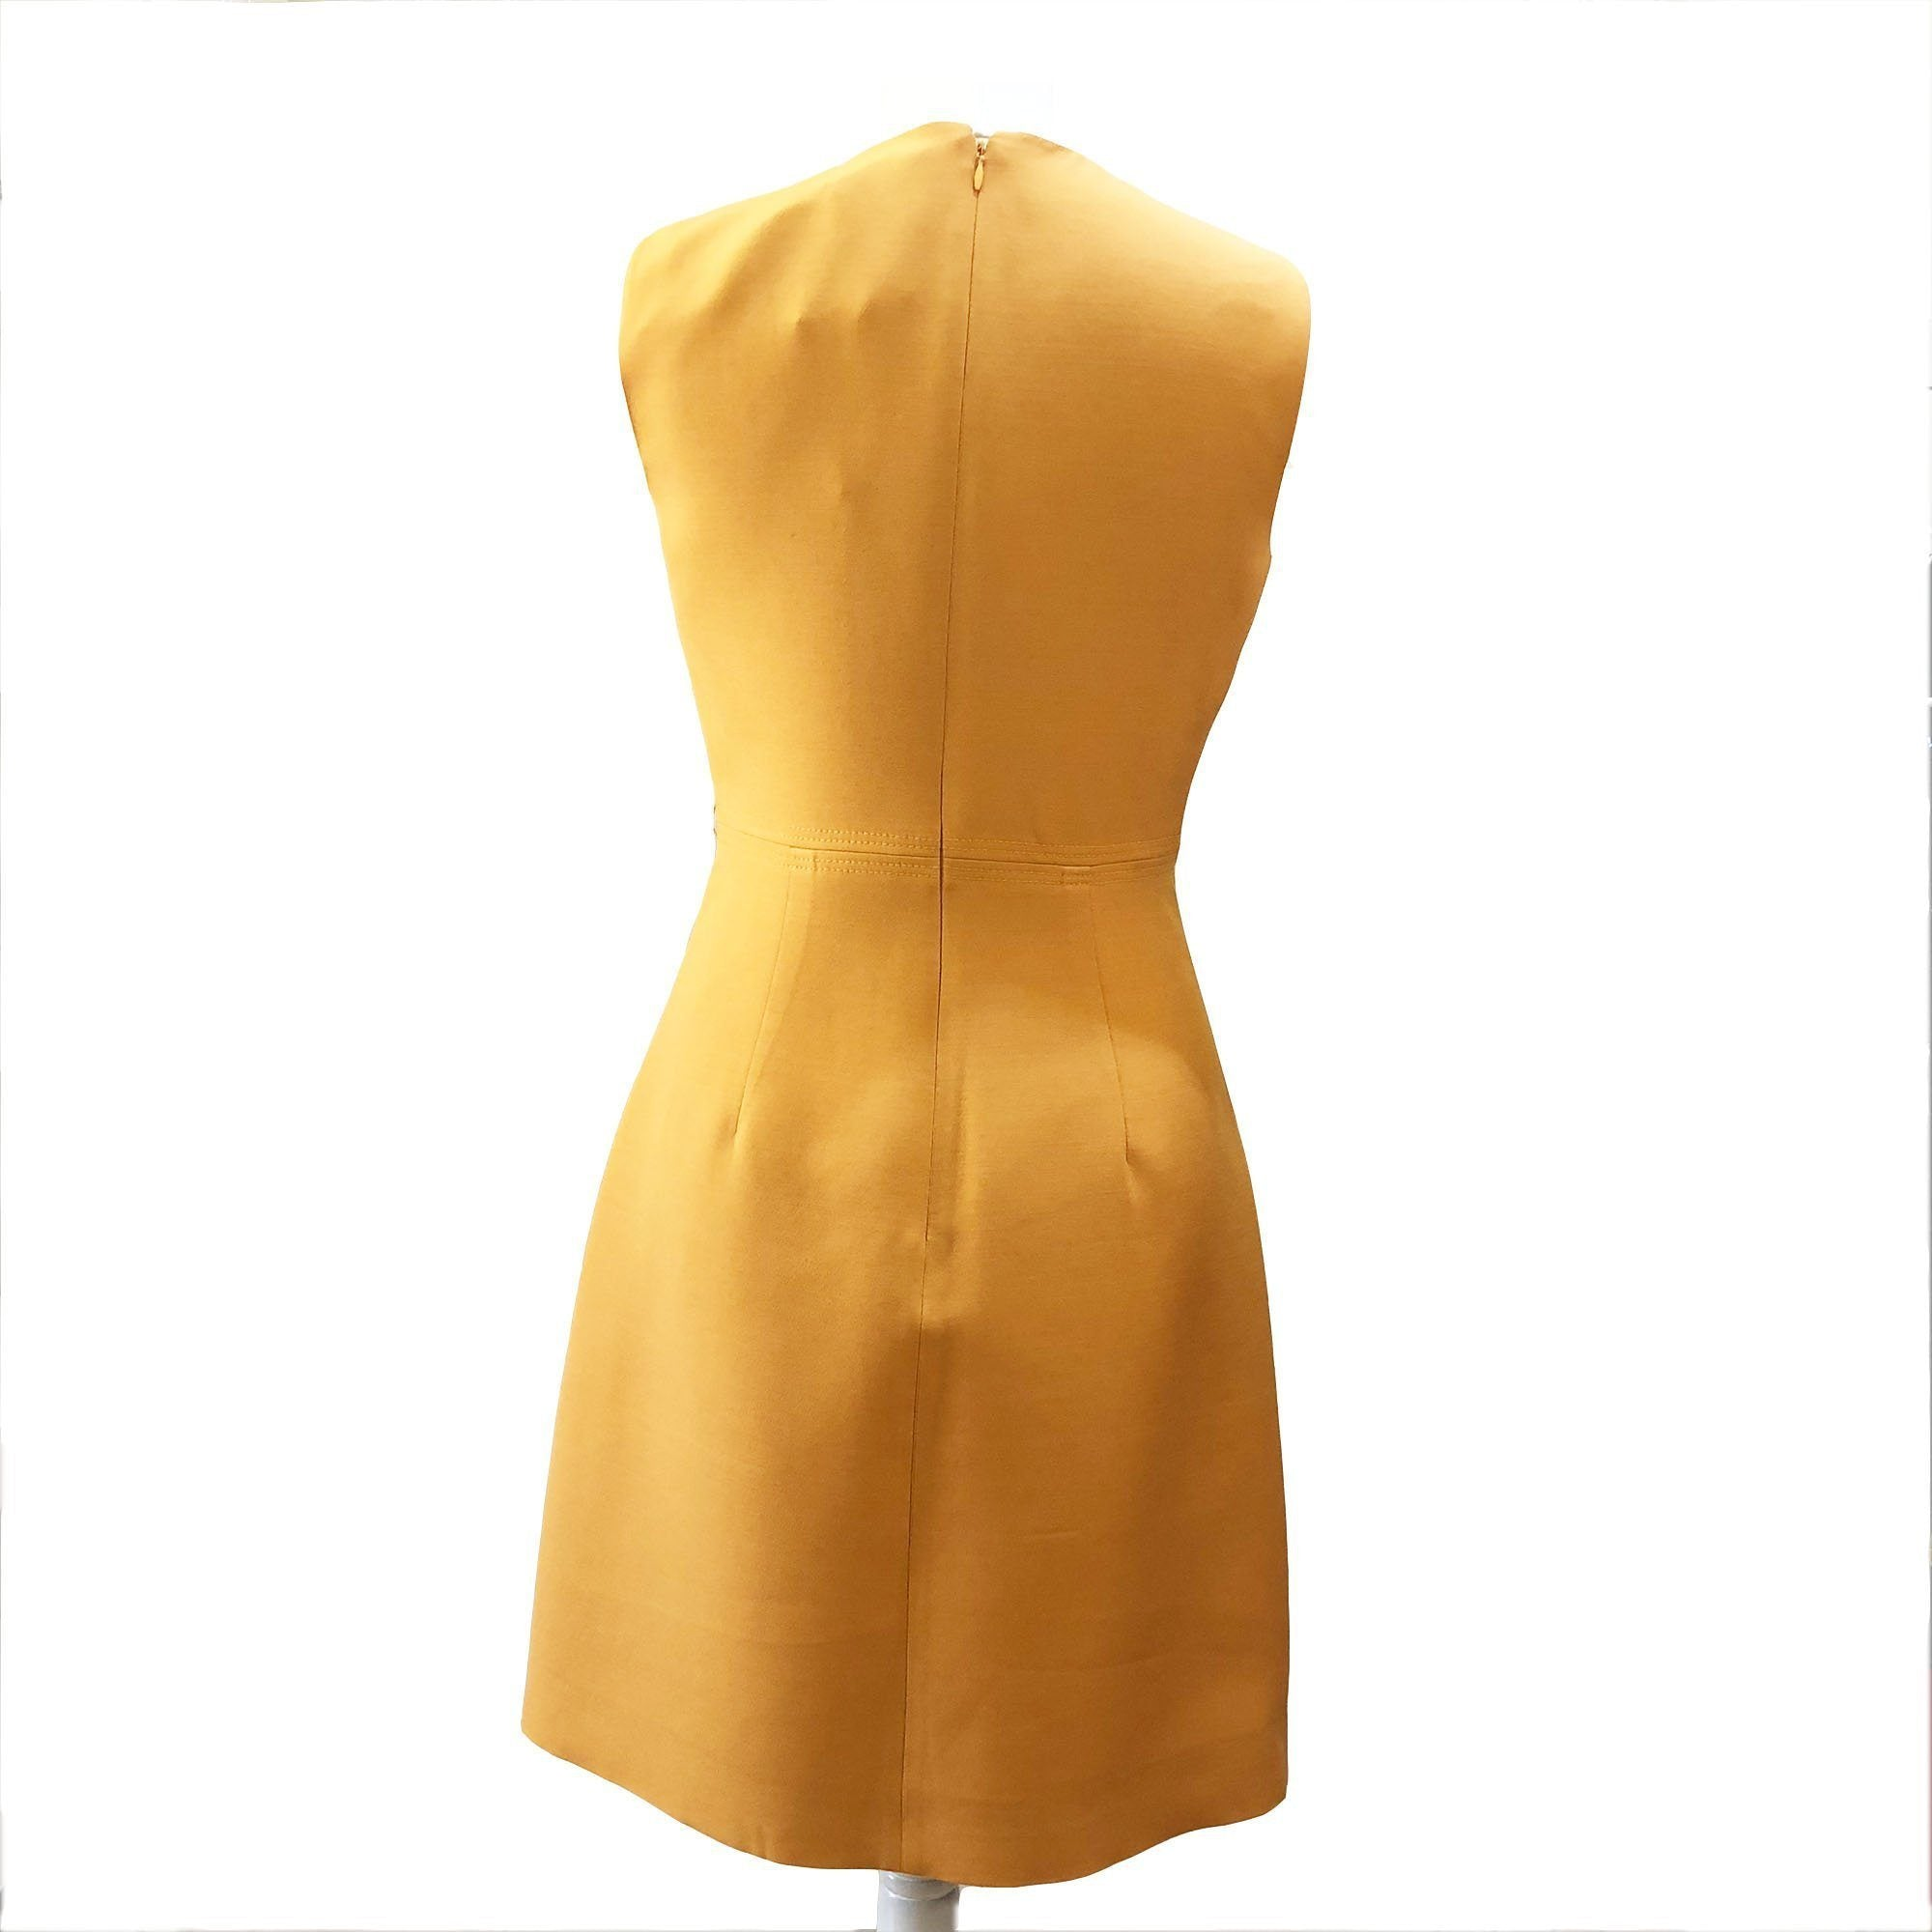 Valentino Mustard Yellow Dress